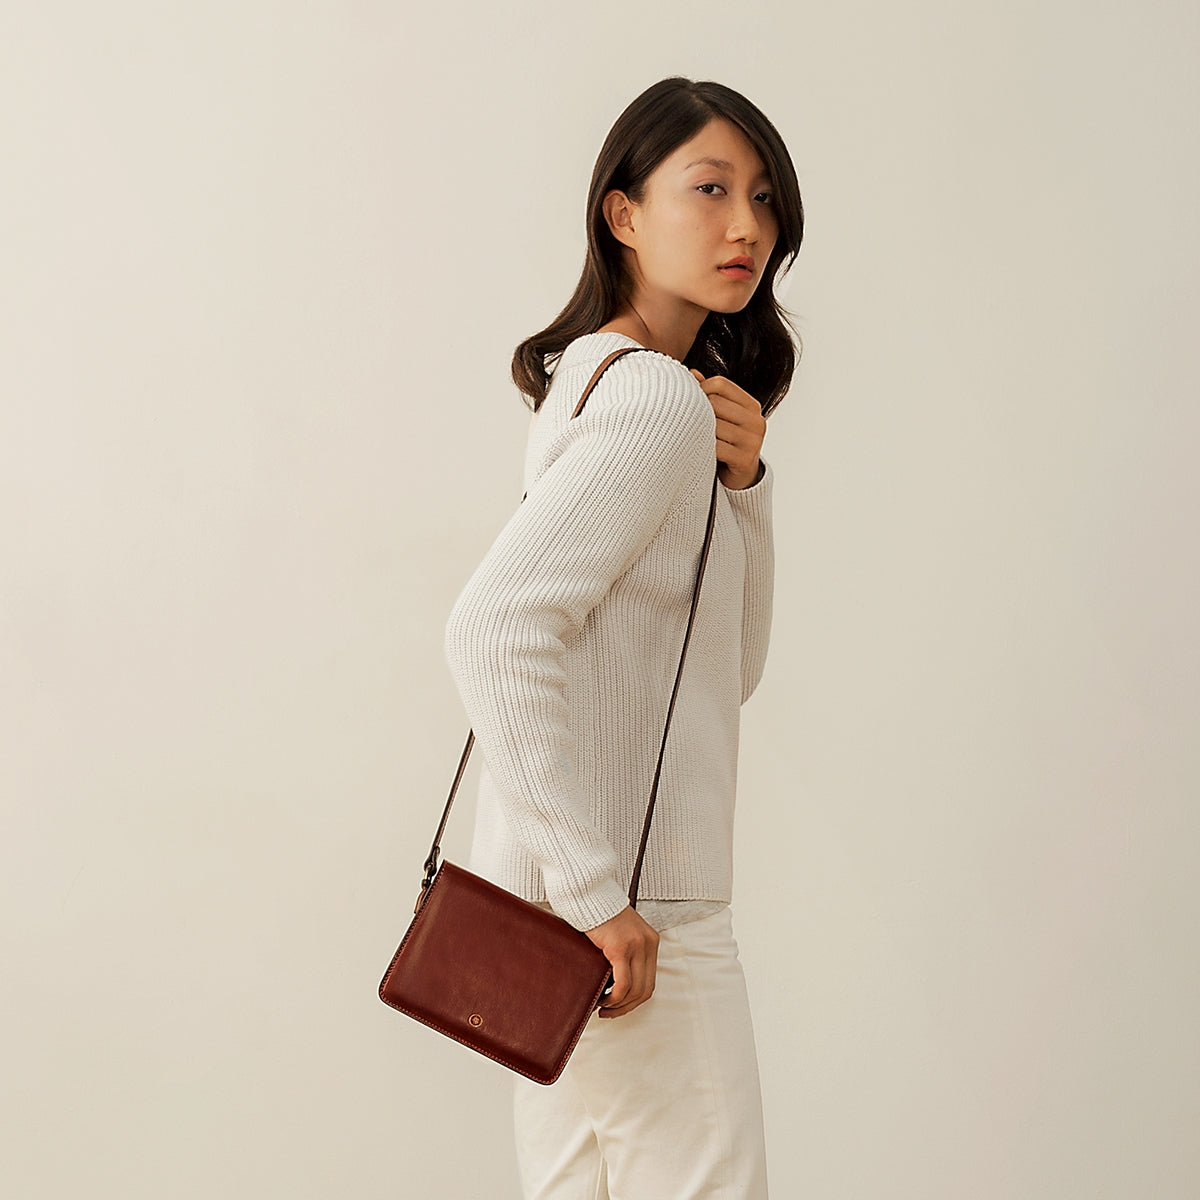 Image 9 of the 'Lucca' Small Chestnut Veg-Tanned Leather Handbag